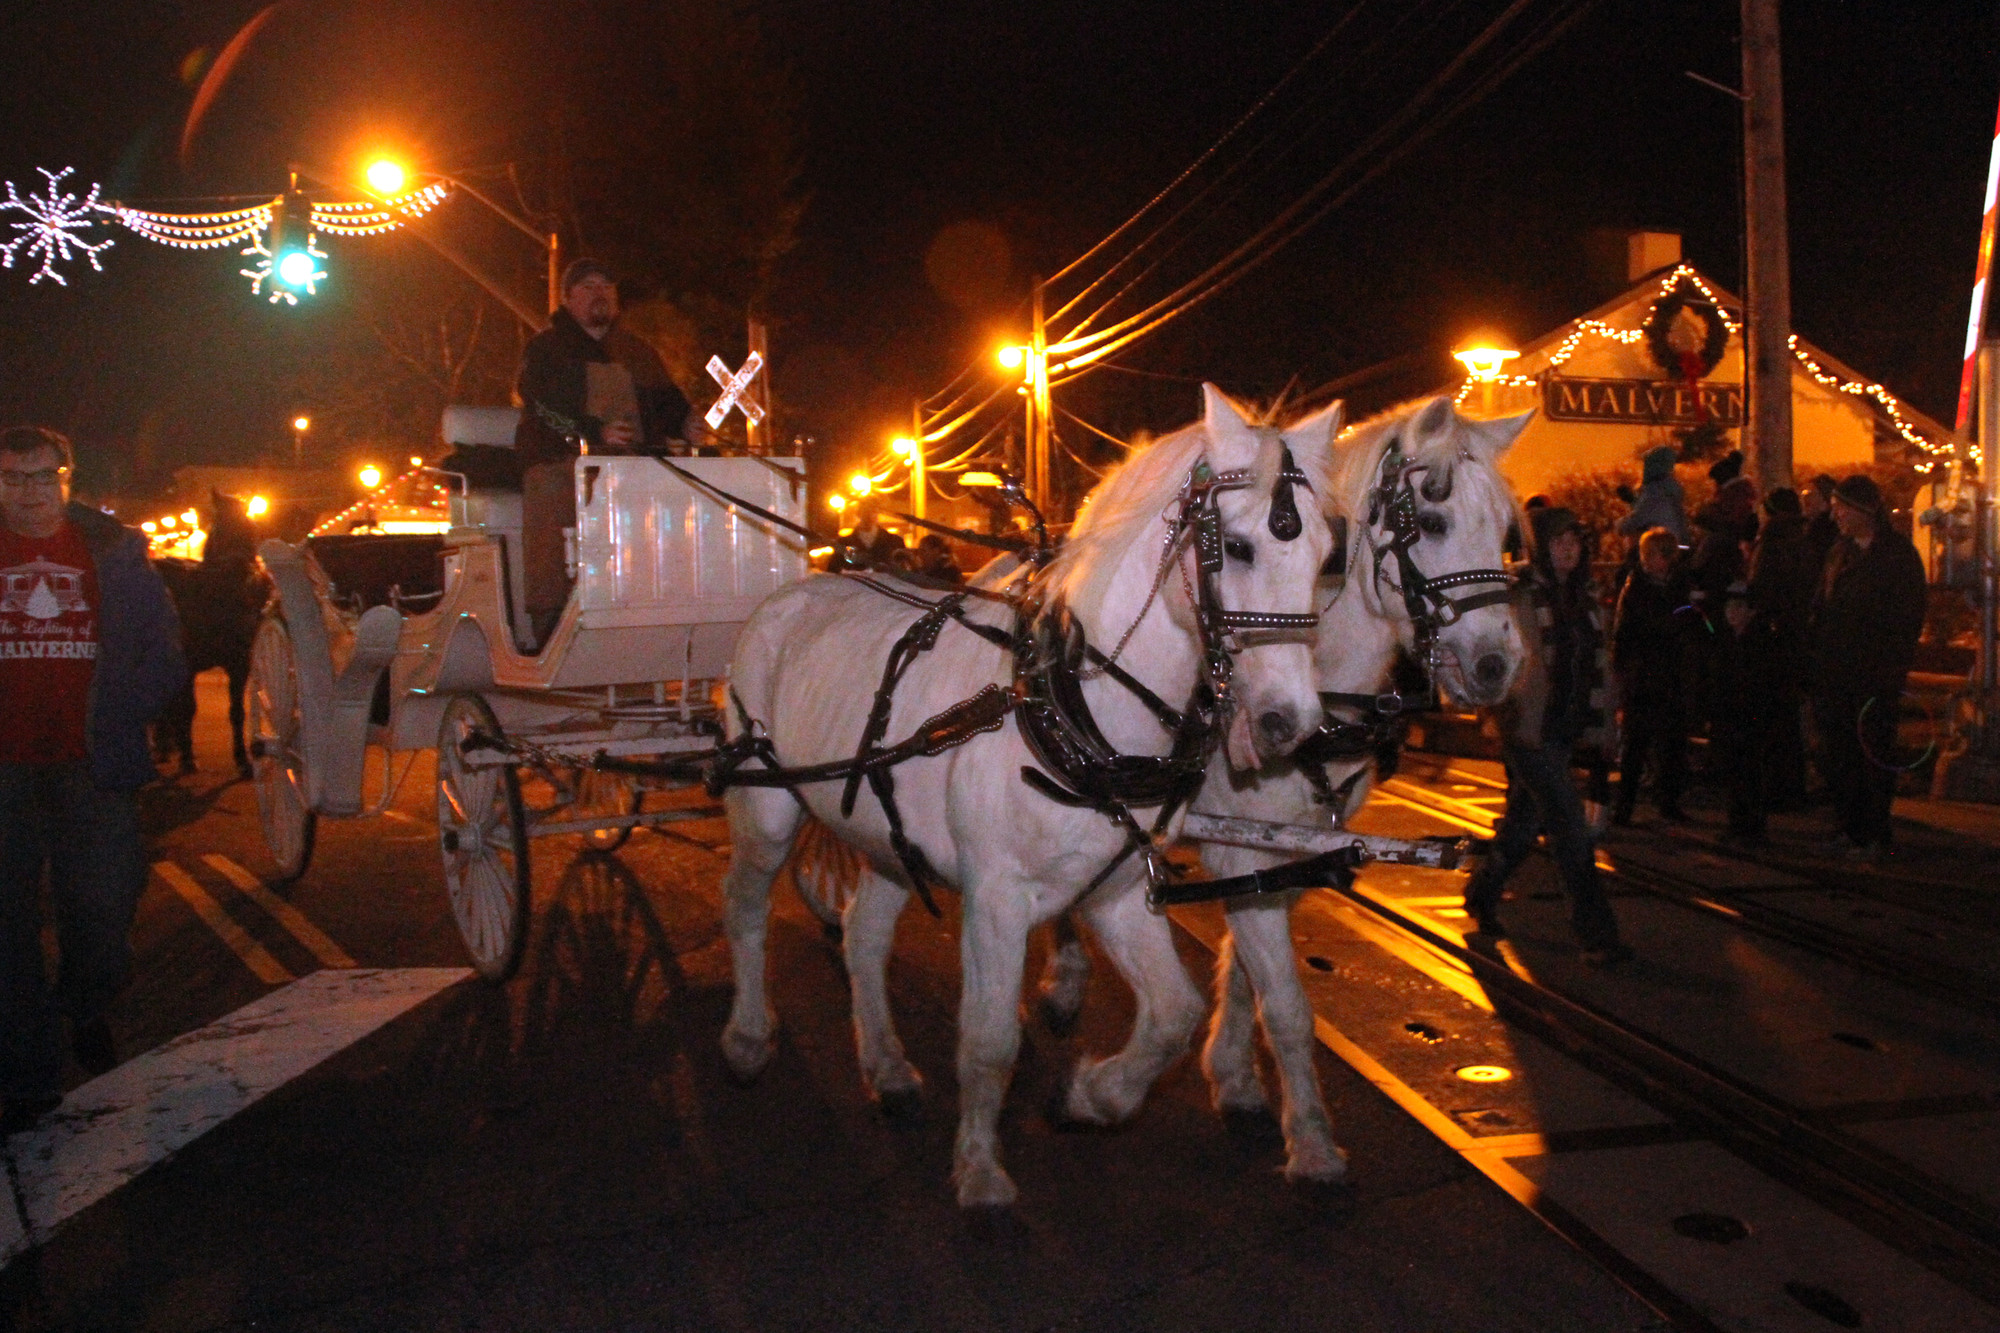 A 2-horsepower carriage offered a scenic ride around the Village of Malverne for visitors at this year's tree lighting ceremony last Saturday.